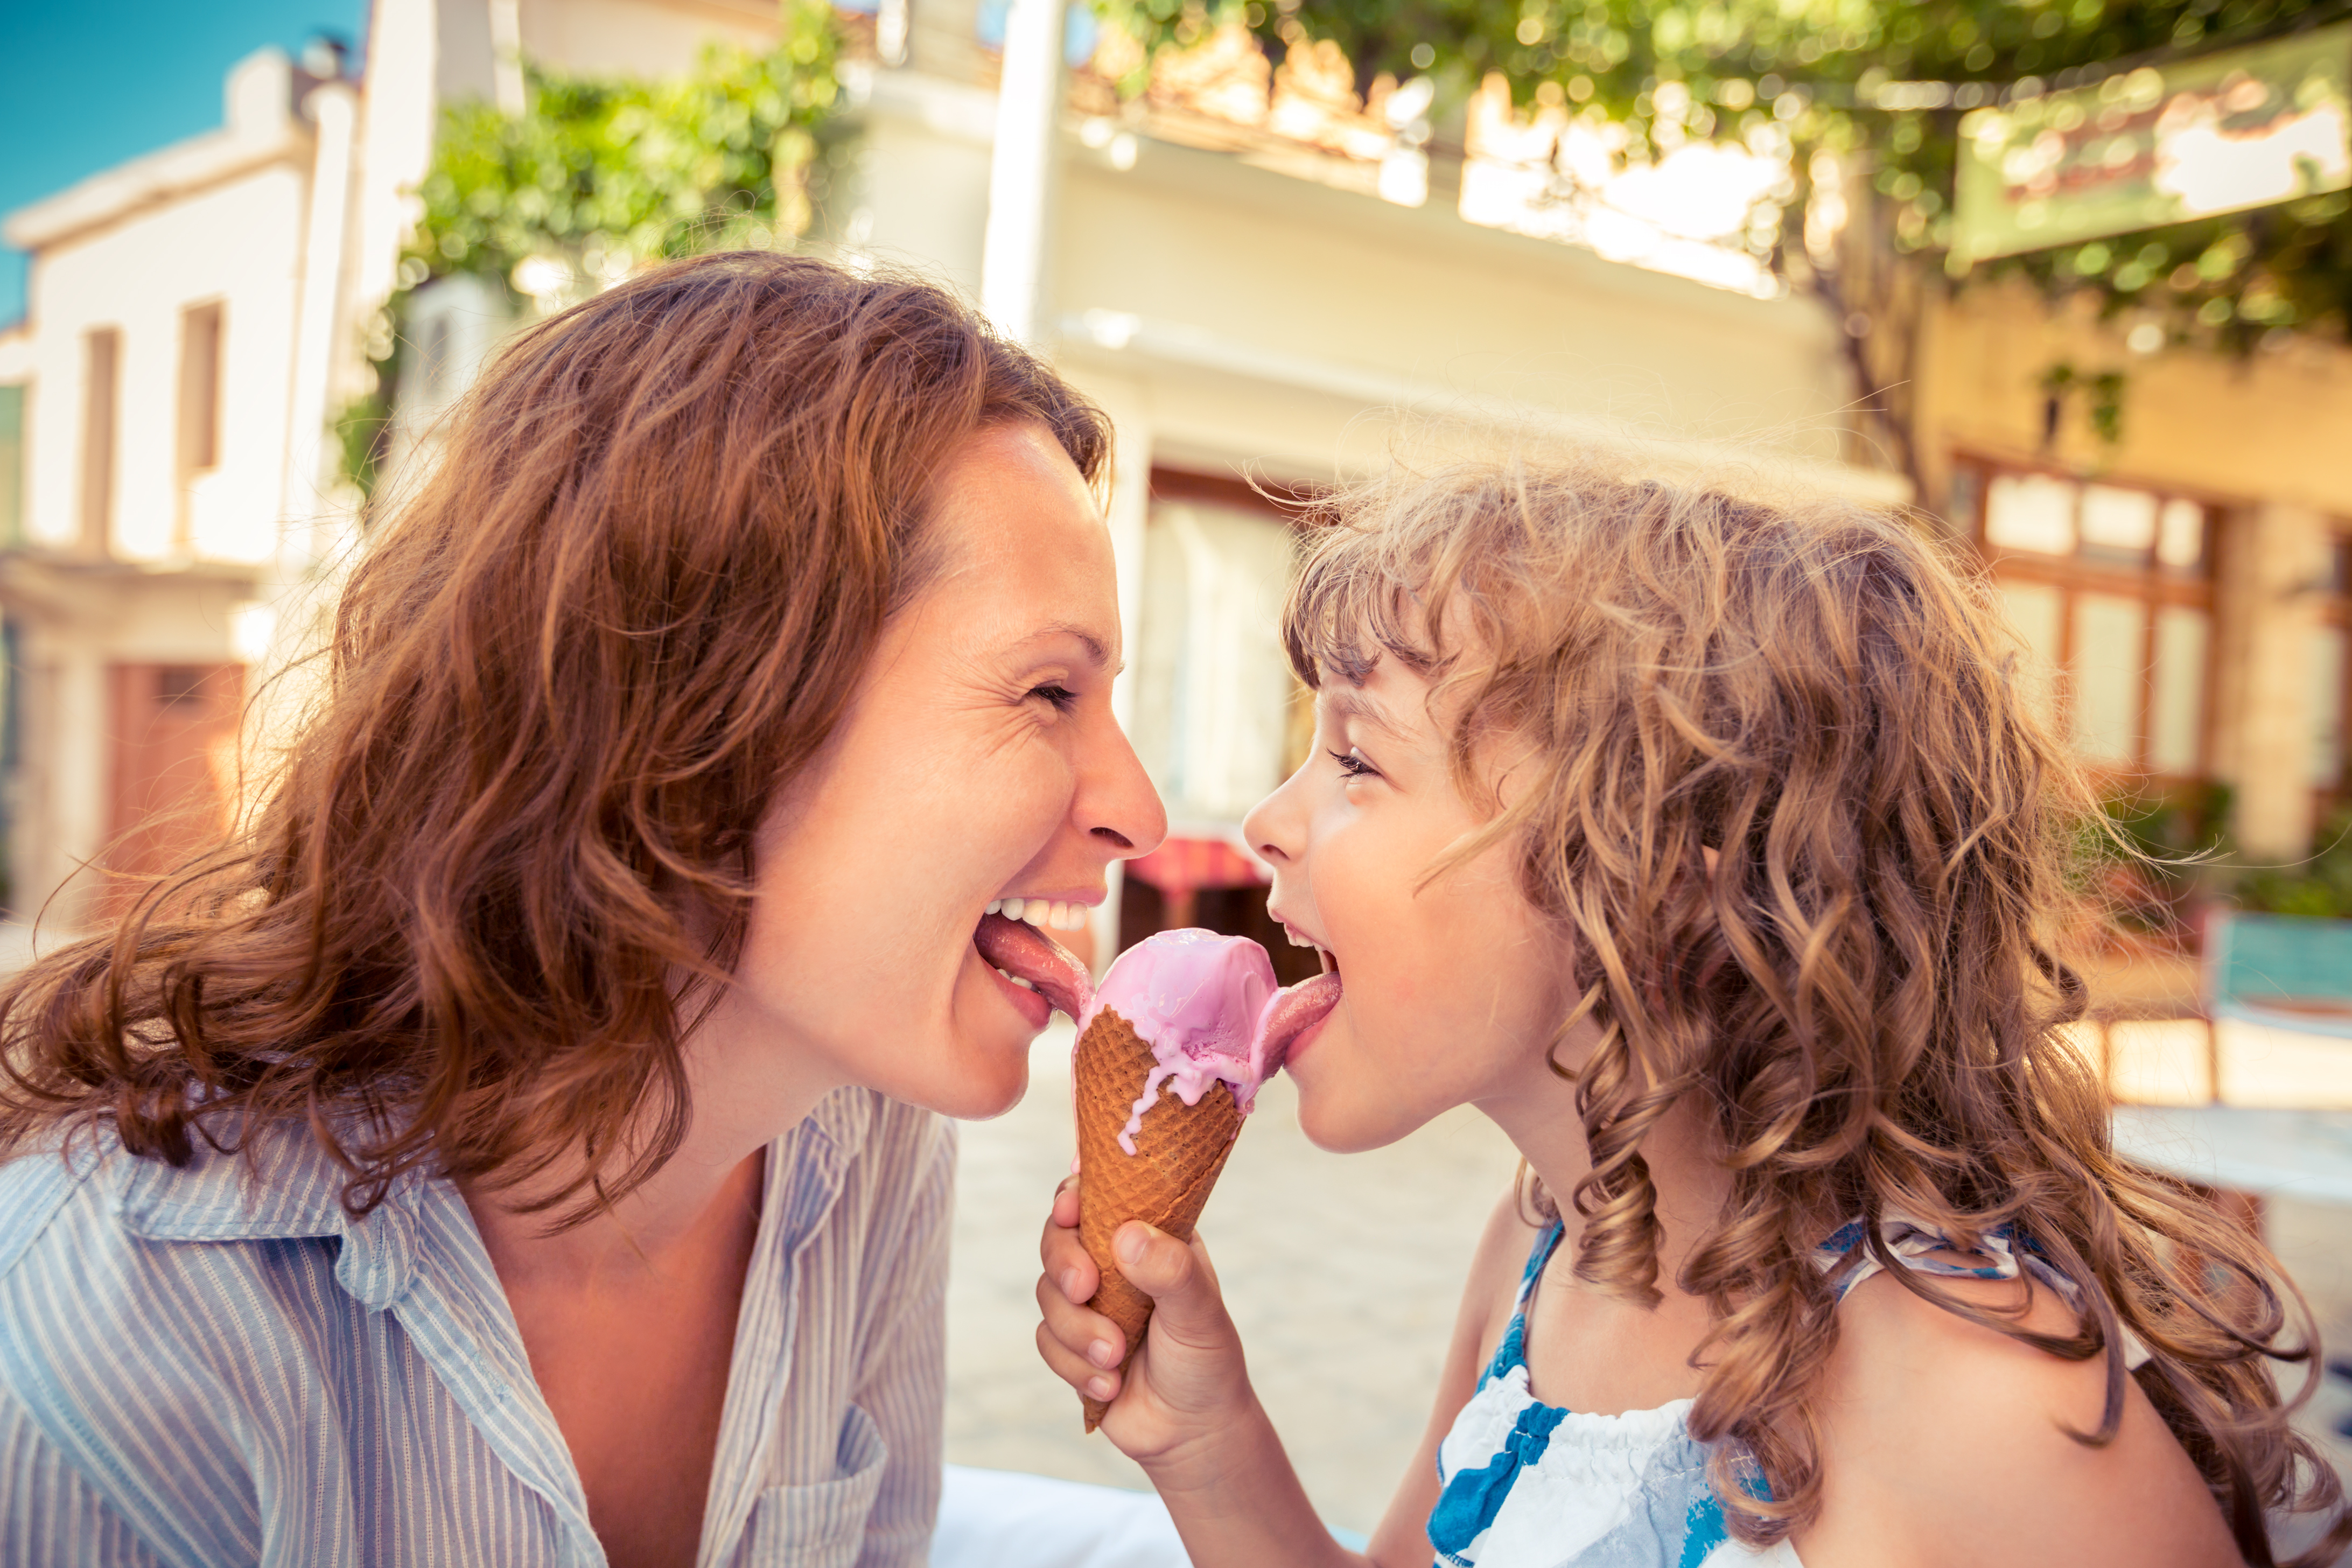 Child and mother eating ice cream together